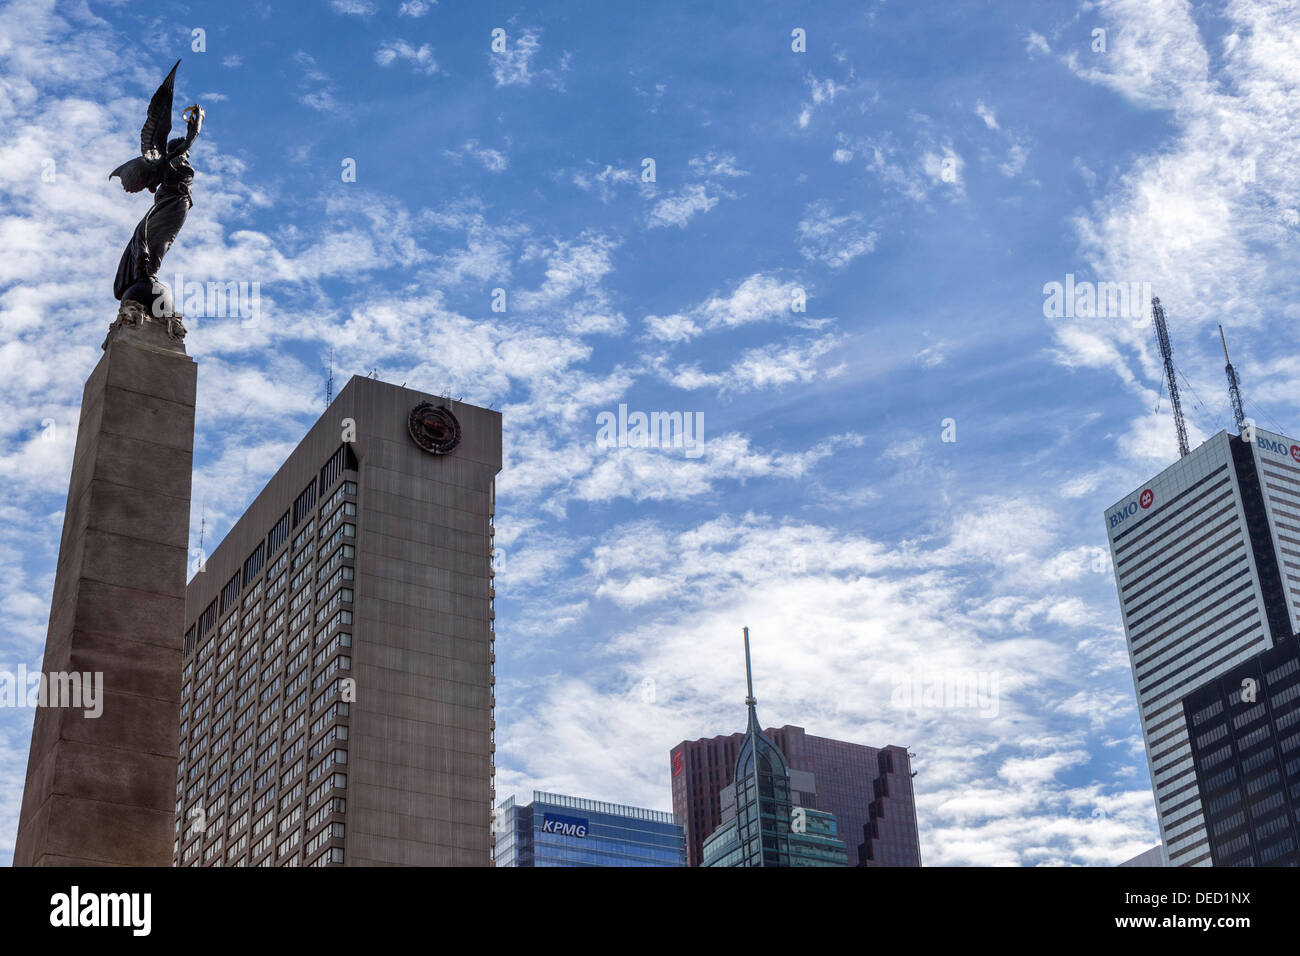 Winged figure on South African war memorial and modern skyscrapers, BMO, Sheraton Hotel, KPMG buildings - Toronto - Stock Image